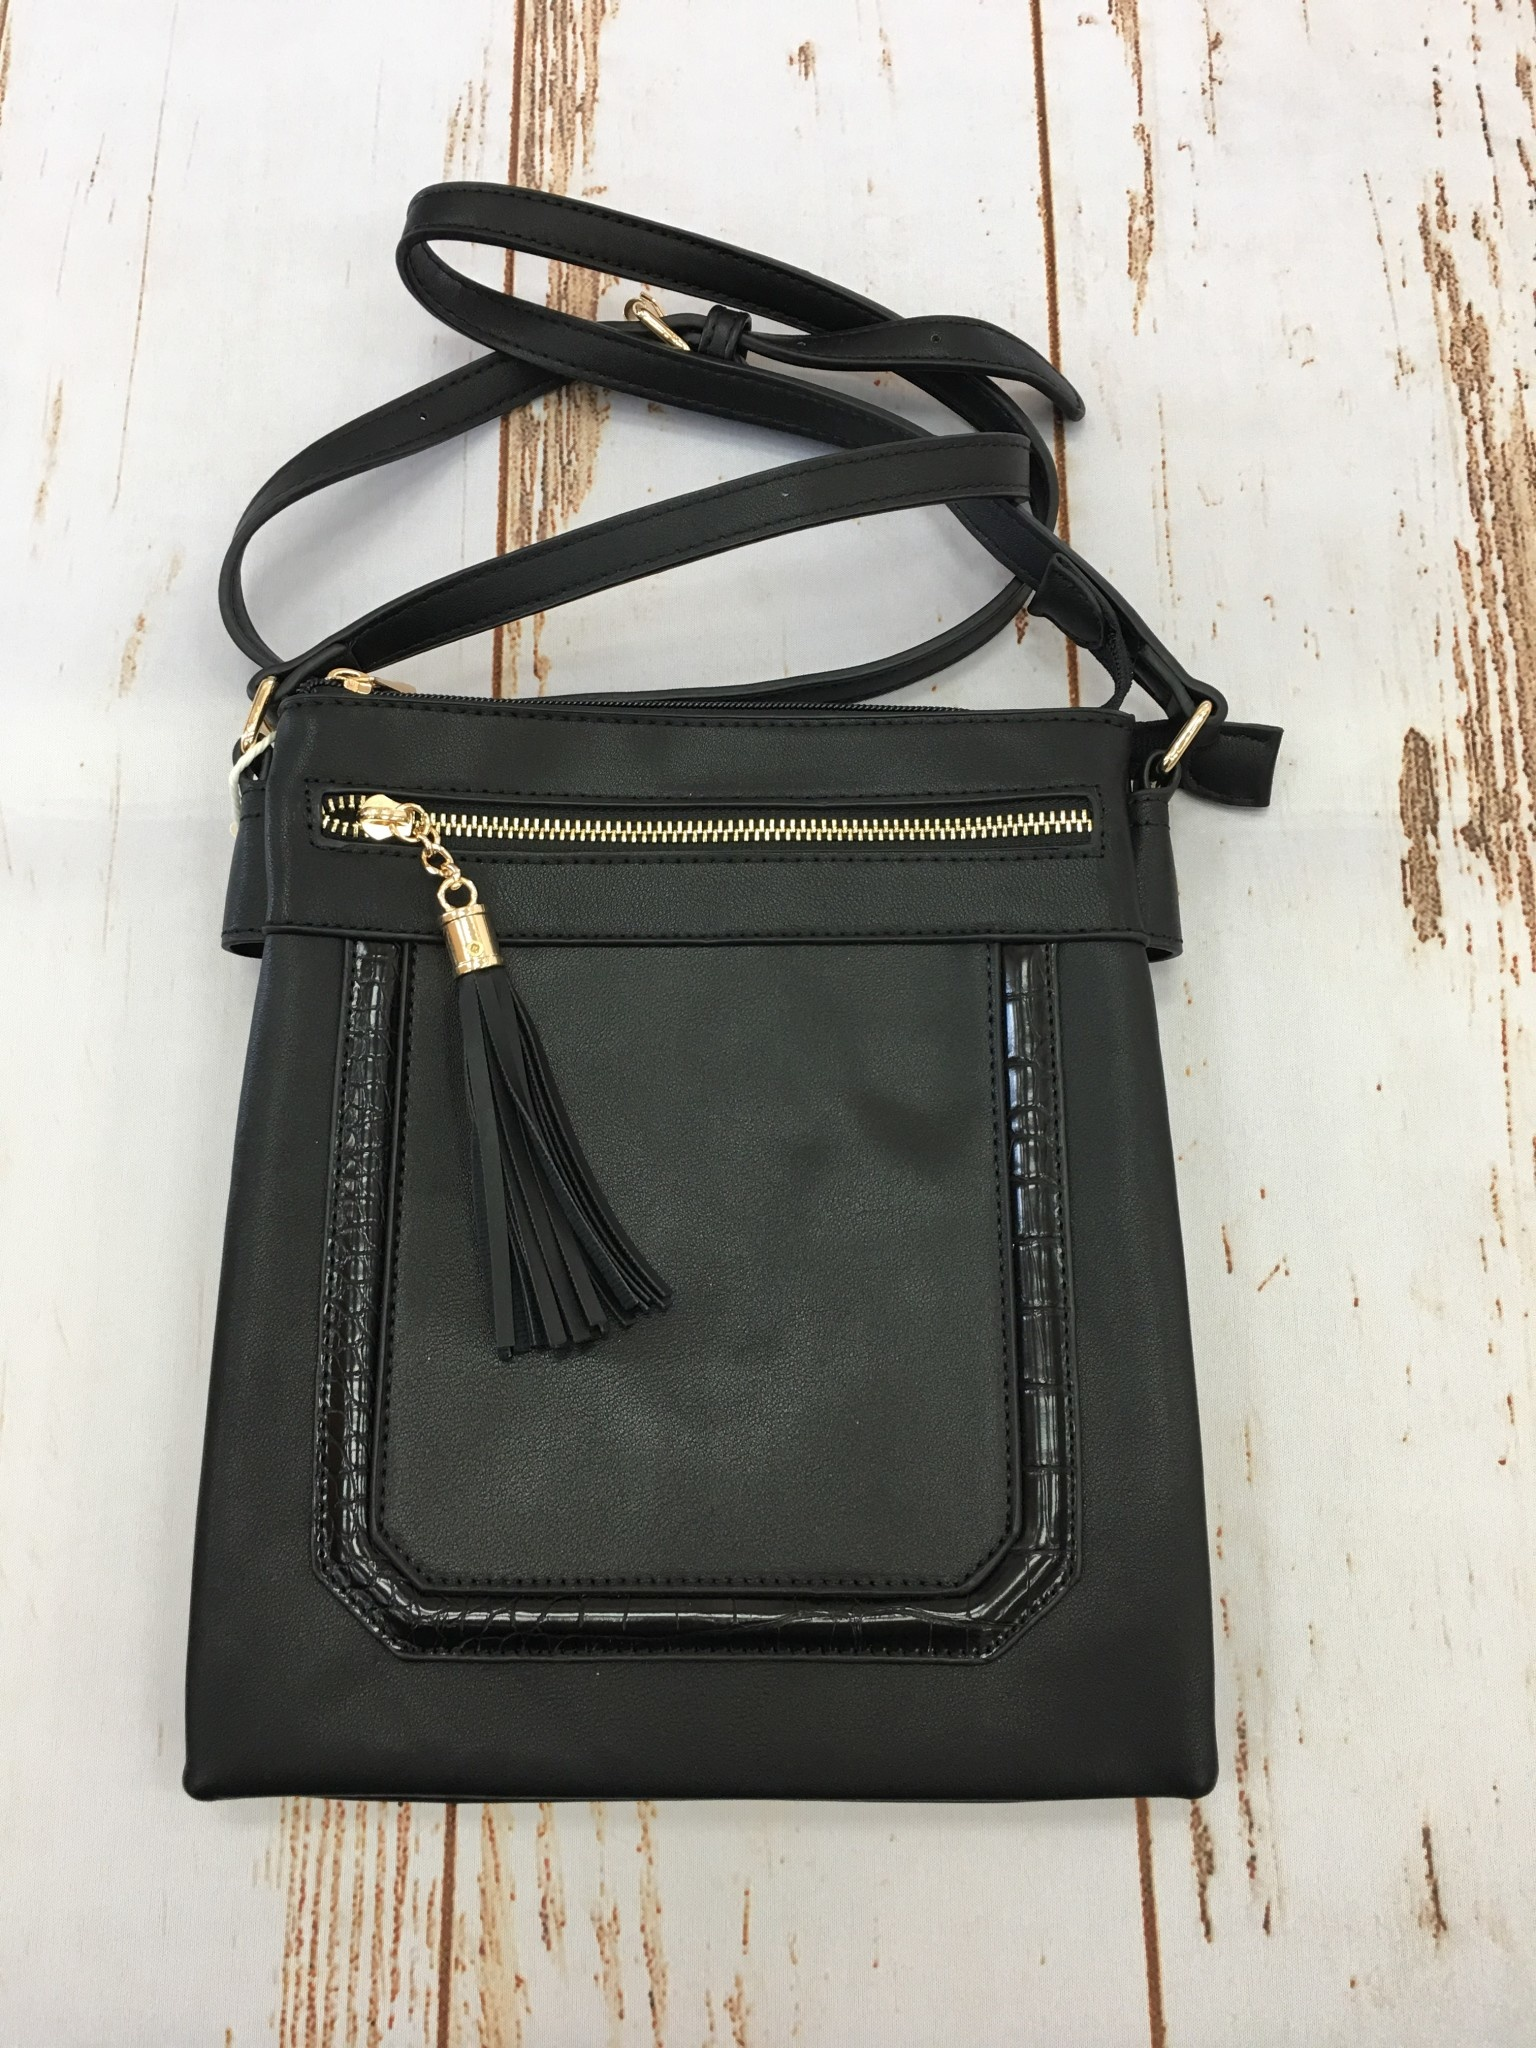 Accessorize Me Crossbody Tassel Purse Black